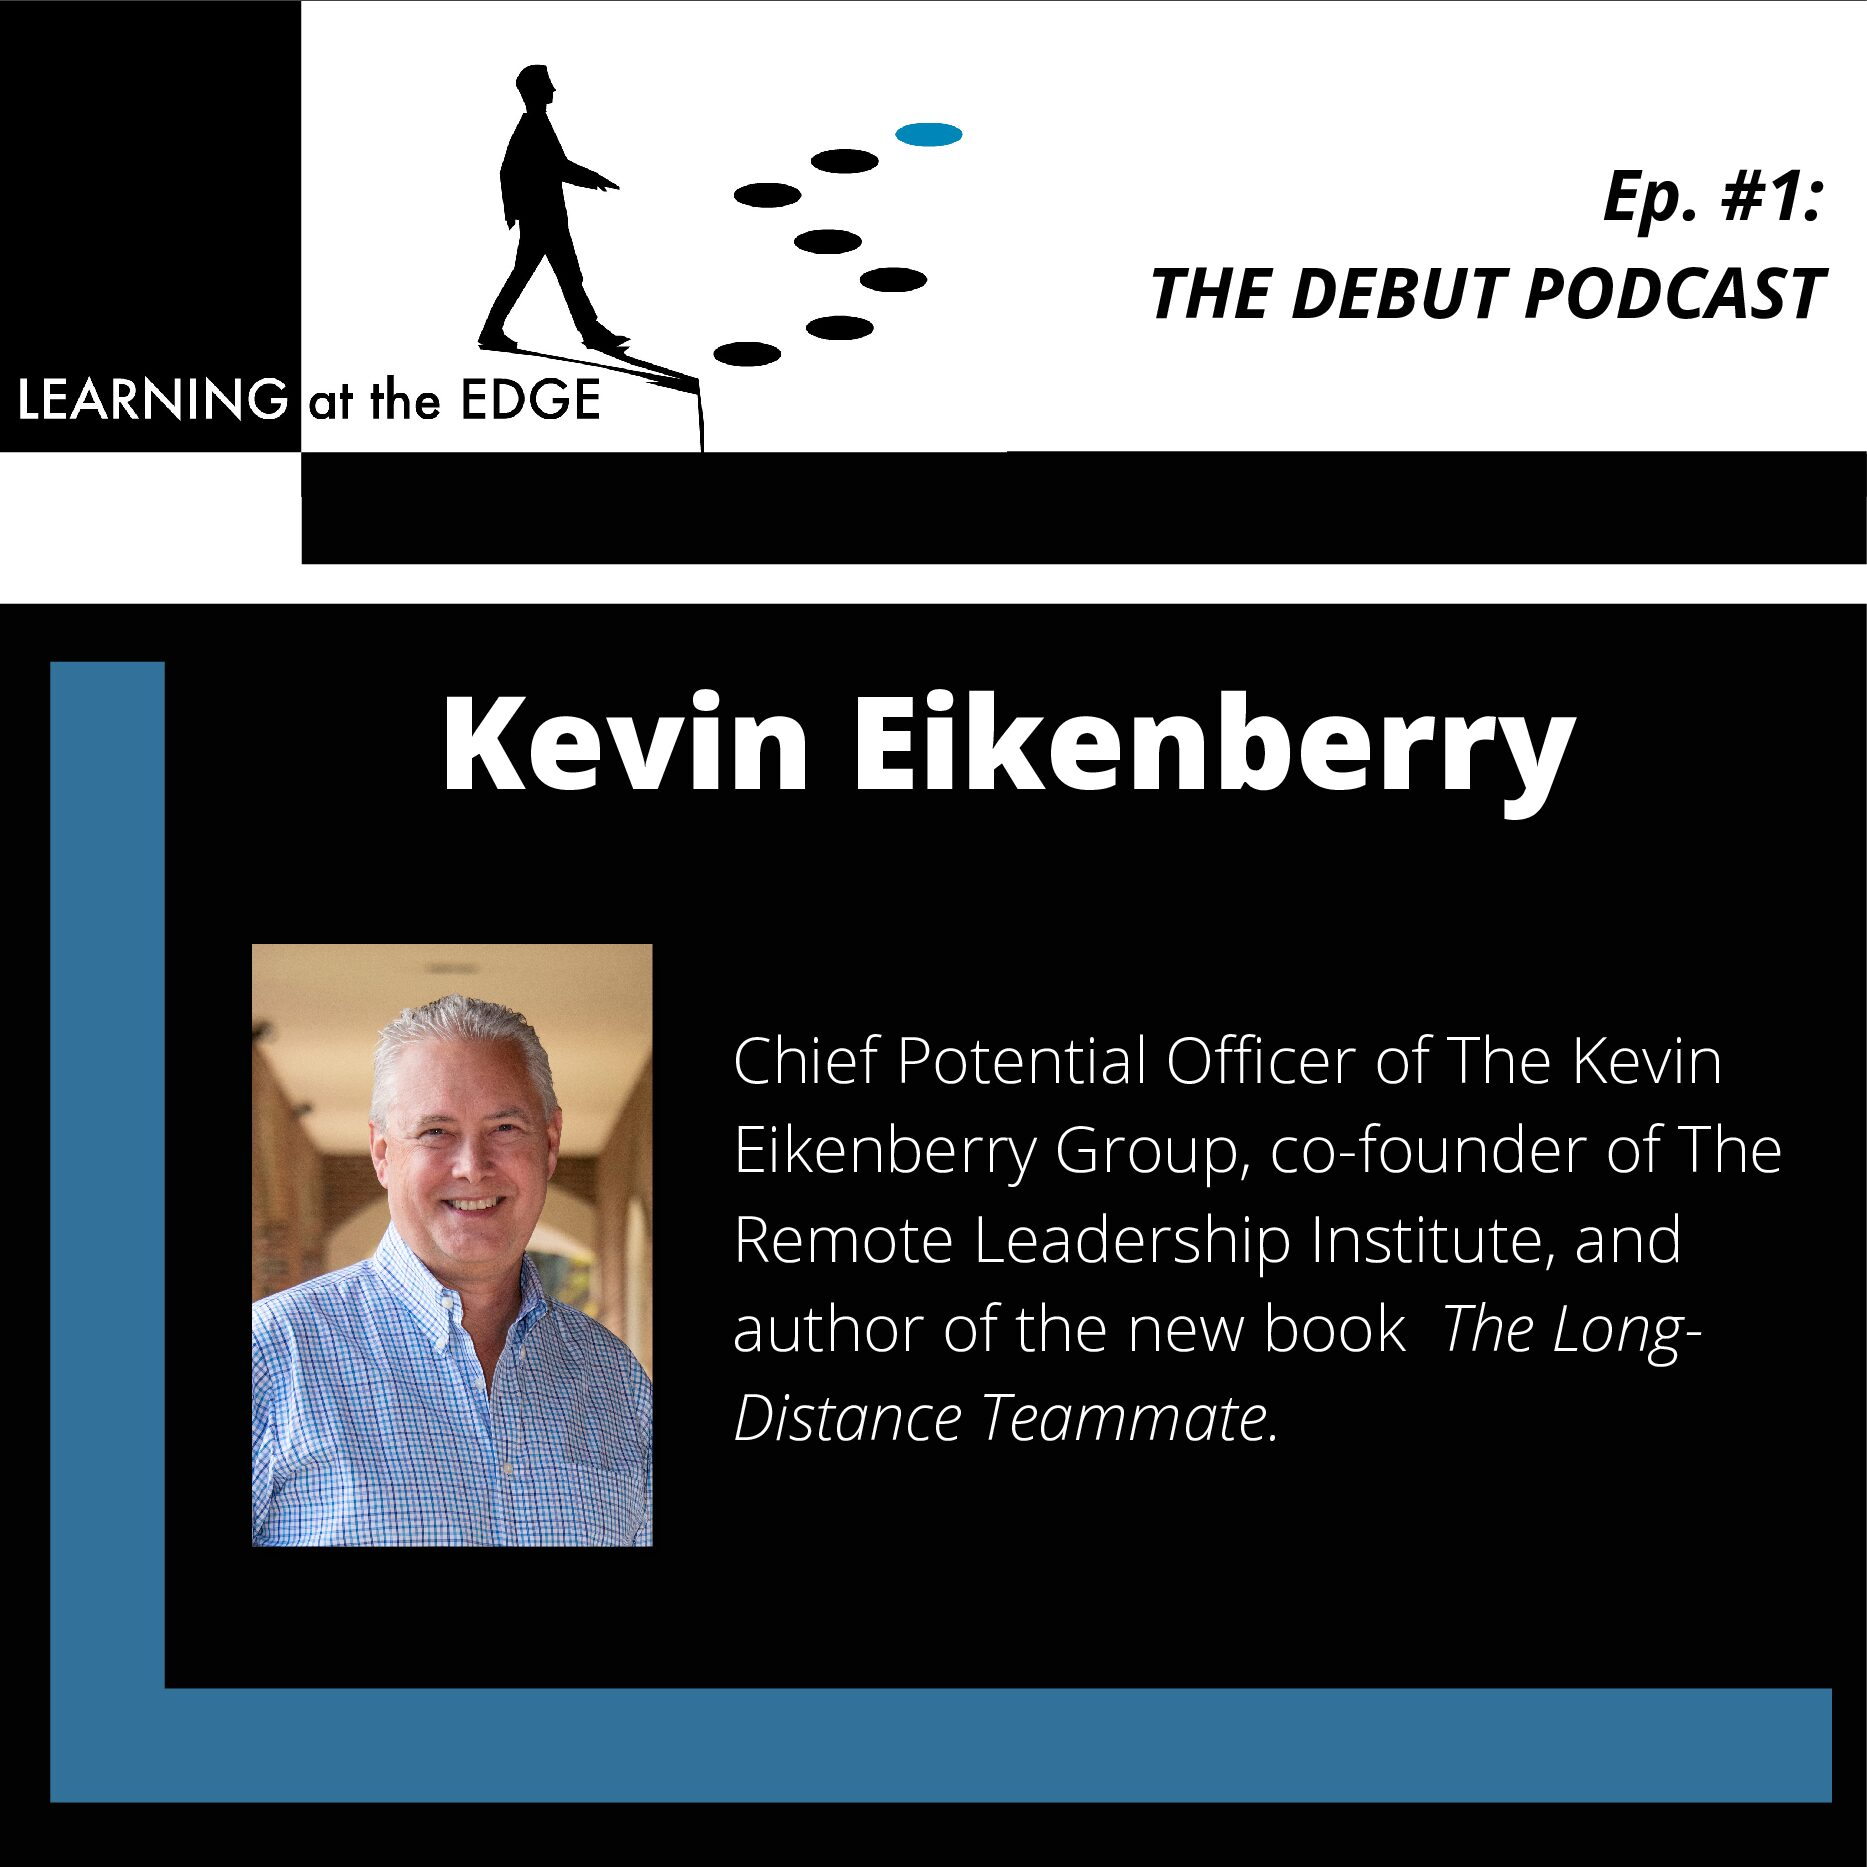 """""""Learning at the Edge"""" Podcast's First Guest: KevinEikenberry"""